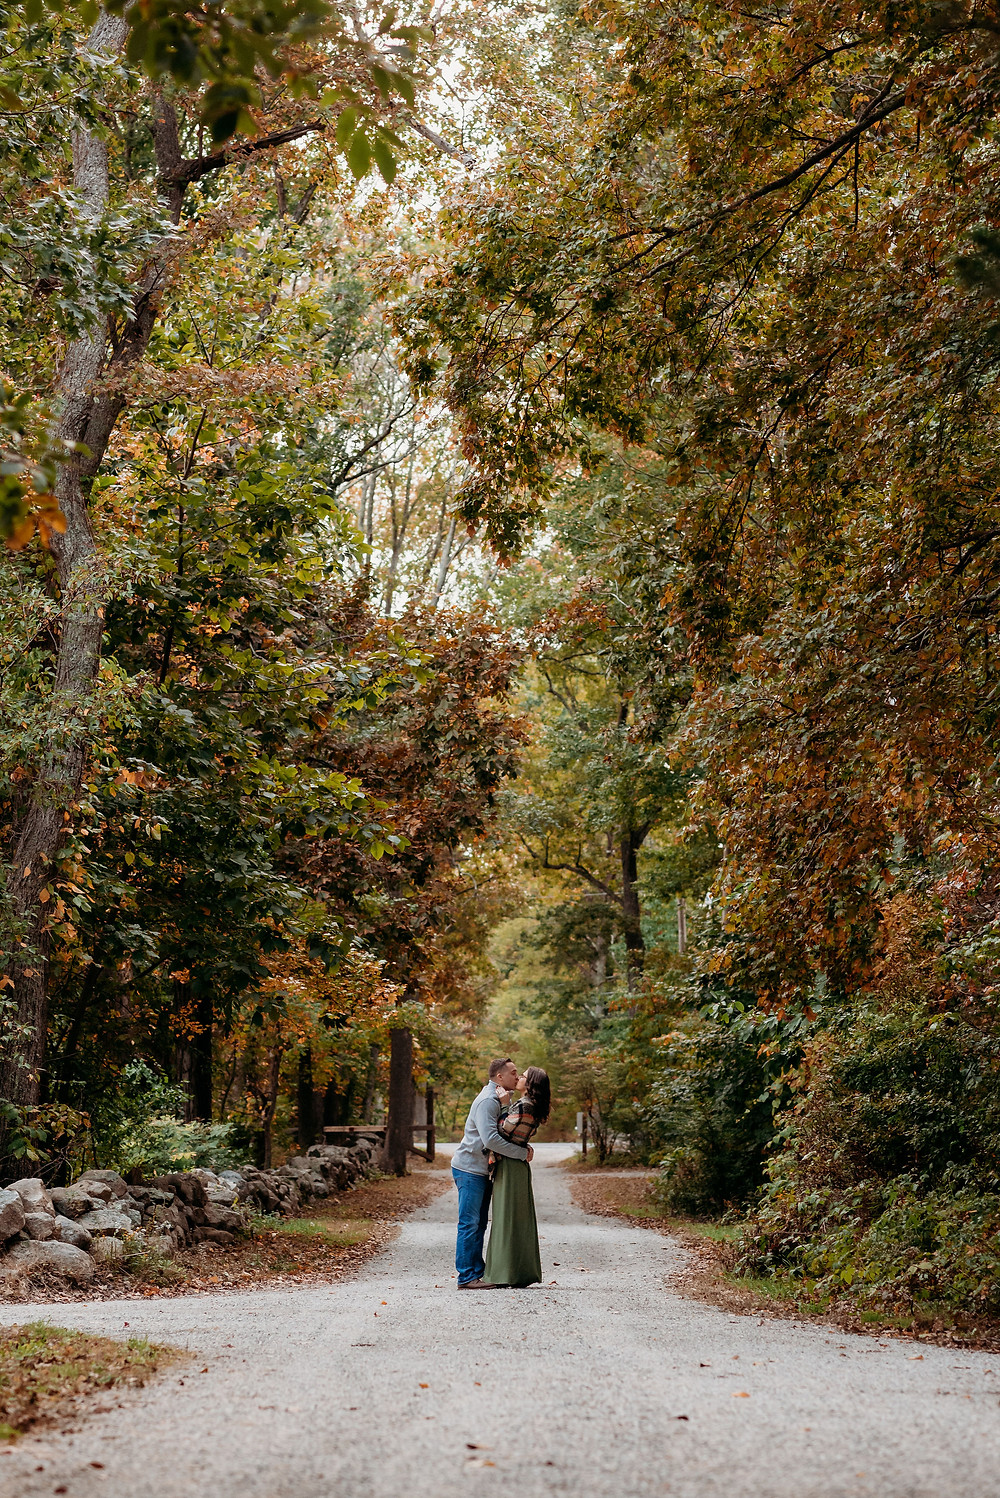 guy and girl stand chest to chest kissing in the middle of the street. the couple is small in the frame as they are far away . trees line the road with fall foliage